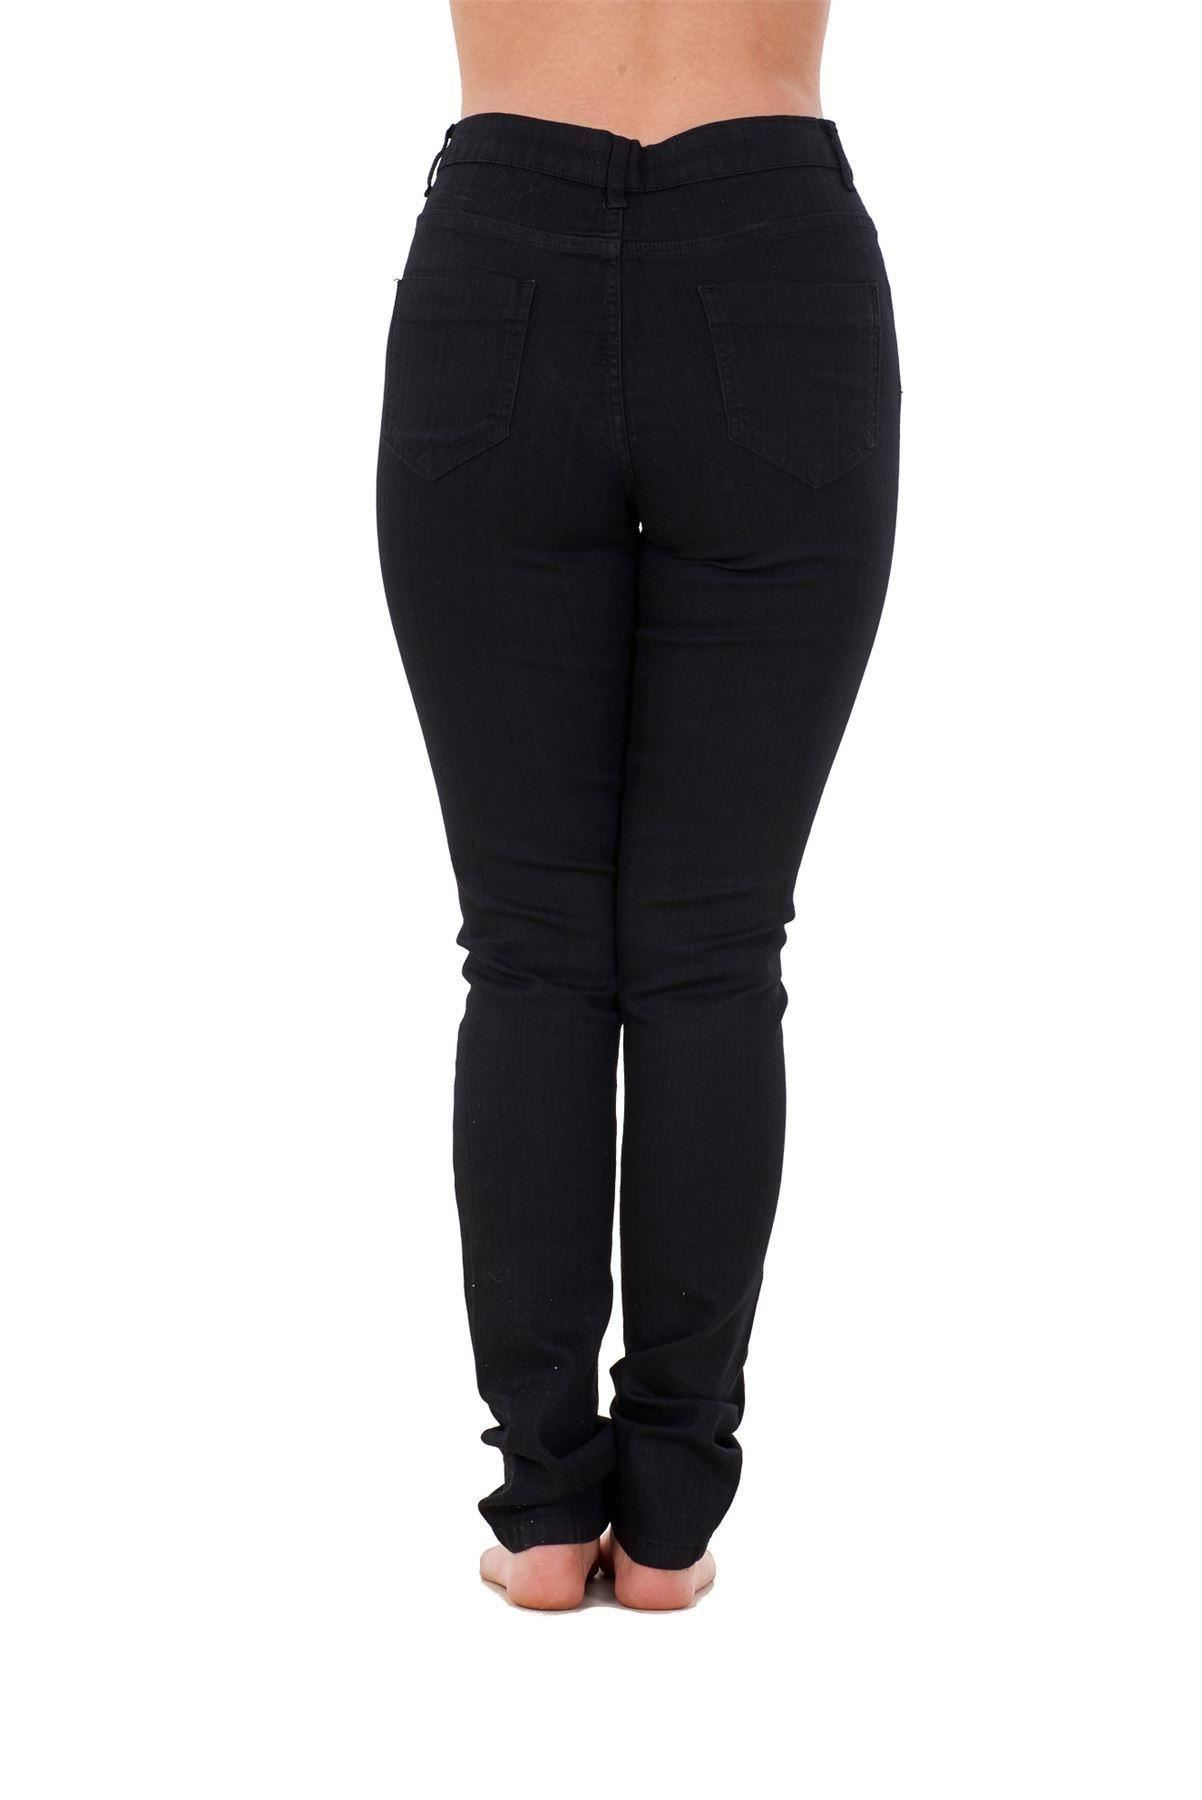 Ladies-Stretch-Jeans-Denim-cotton-Zip-fly-High-Waisted-Slim-Fit-Trousers-Pants thumbnail 4